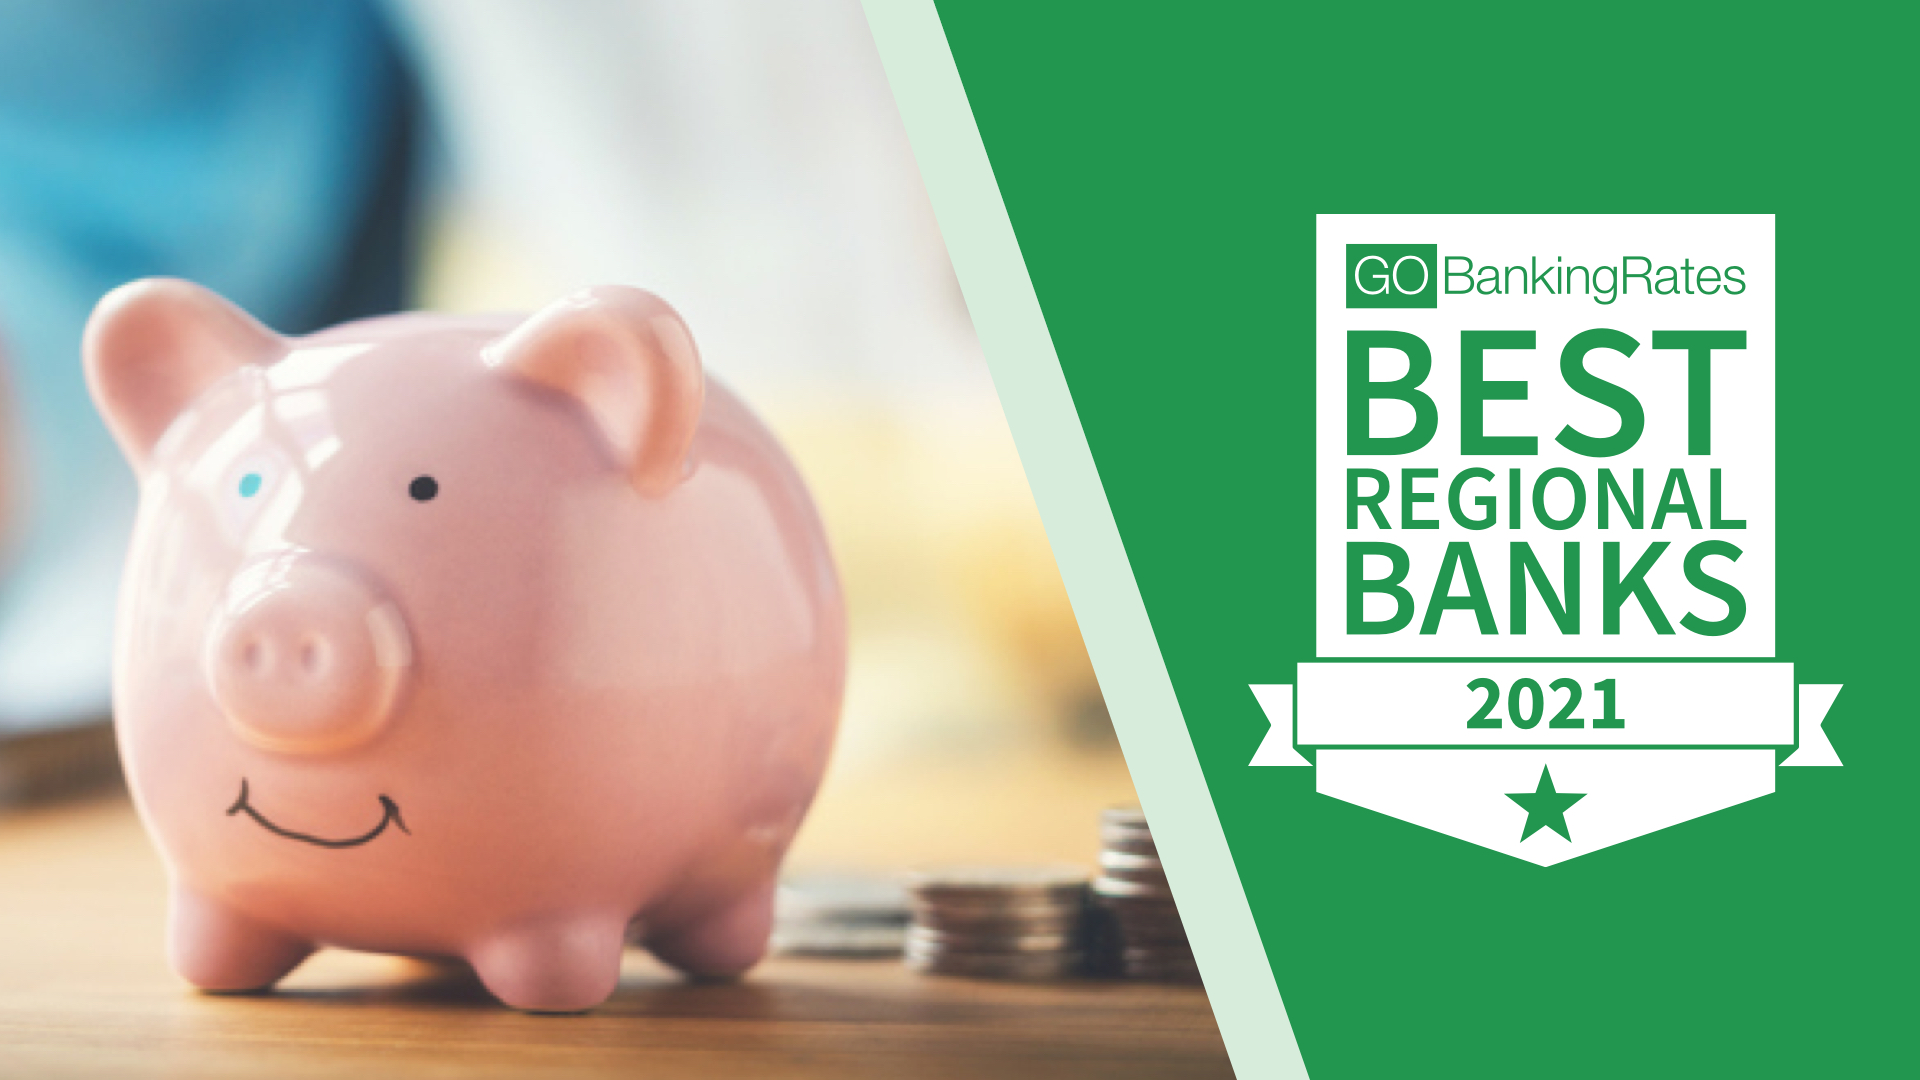 Best Regional Banks of 2021: Localized Focus With Broad Product Lines